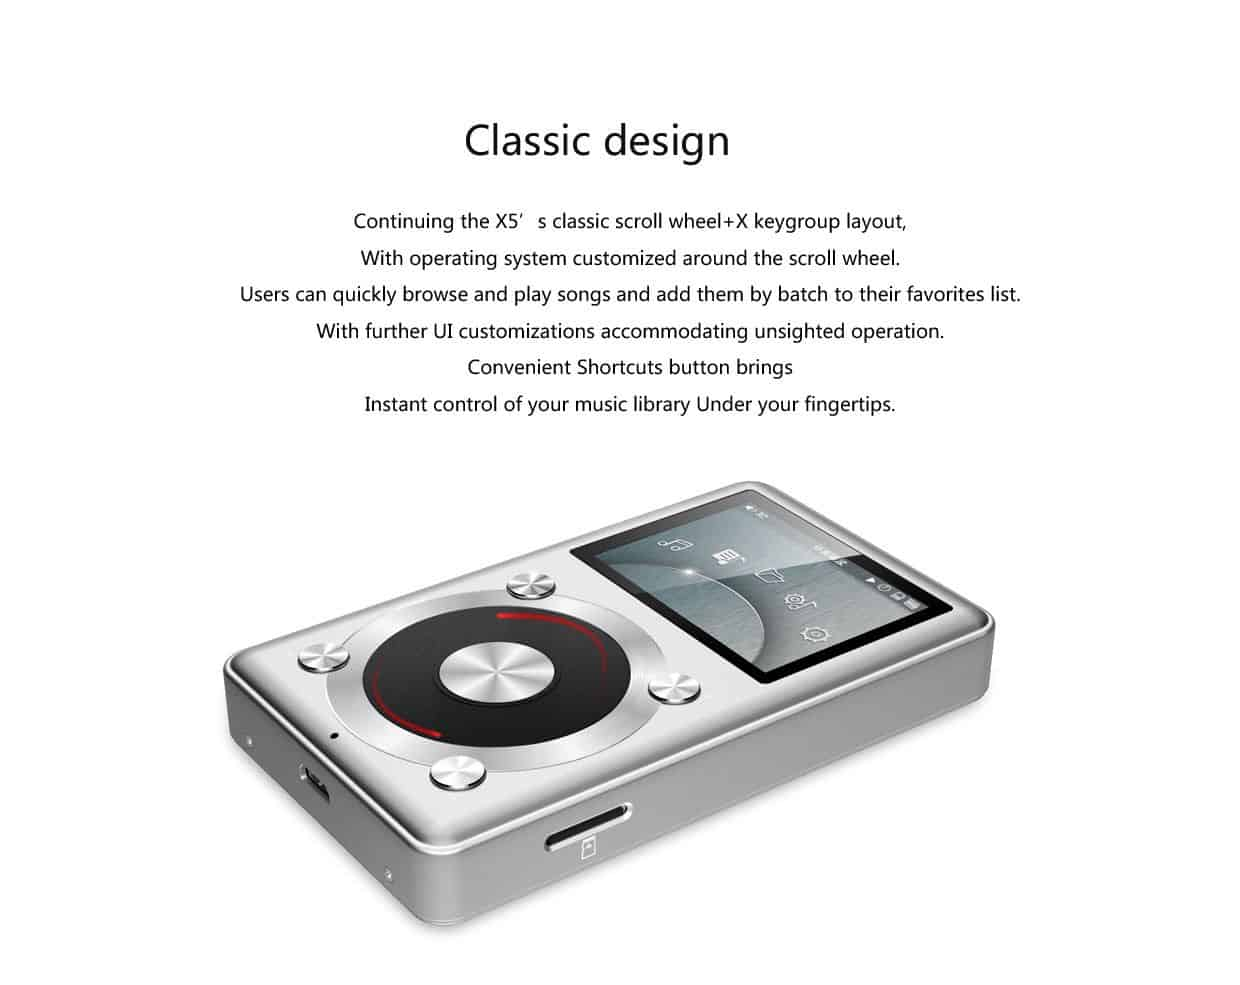 amazon Fiio X1 reviews Fiio X1 on amazon newest Fiio X1 prices of Fiio X1 Fiio X1 deals best deals on Fiio X1 buying a Fiio X1 lastest Fiio X1 what is a Fiio X1 Fiio X1 at amazon where to buy Fiio X1 where can i you get a Fiio X1 online purchase Fiio X1 Fiio X1 sale off Fiio X1 discount cheapest Fiio X1 Fiio X1 for sale